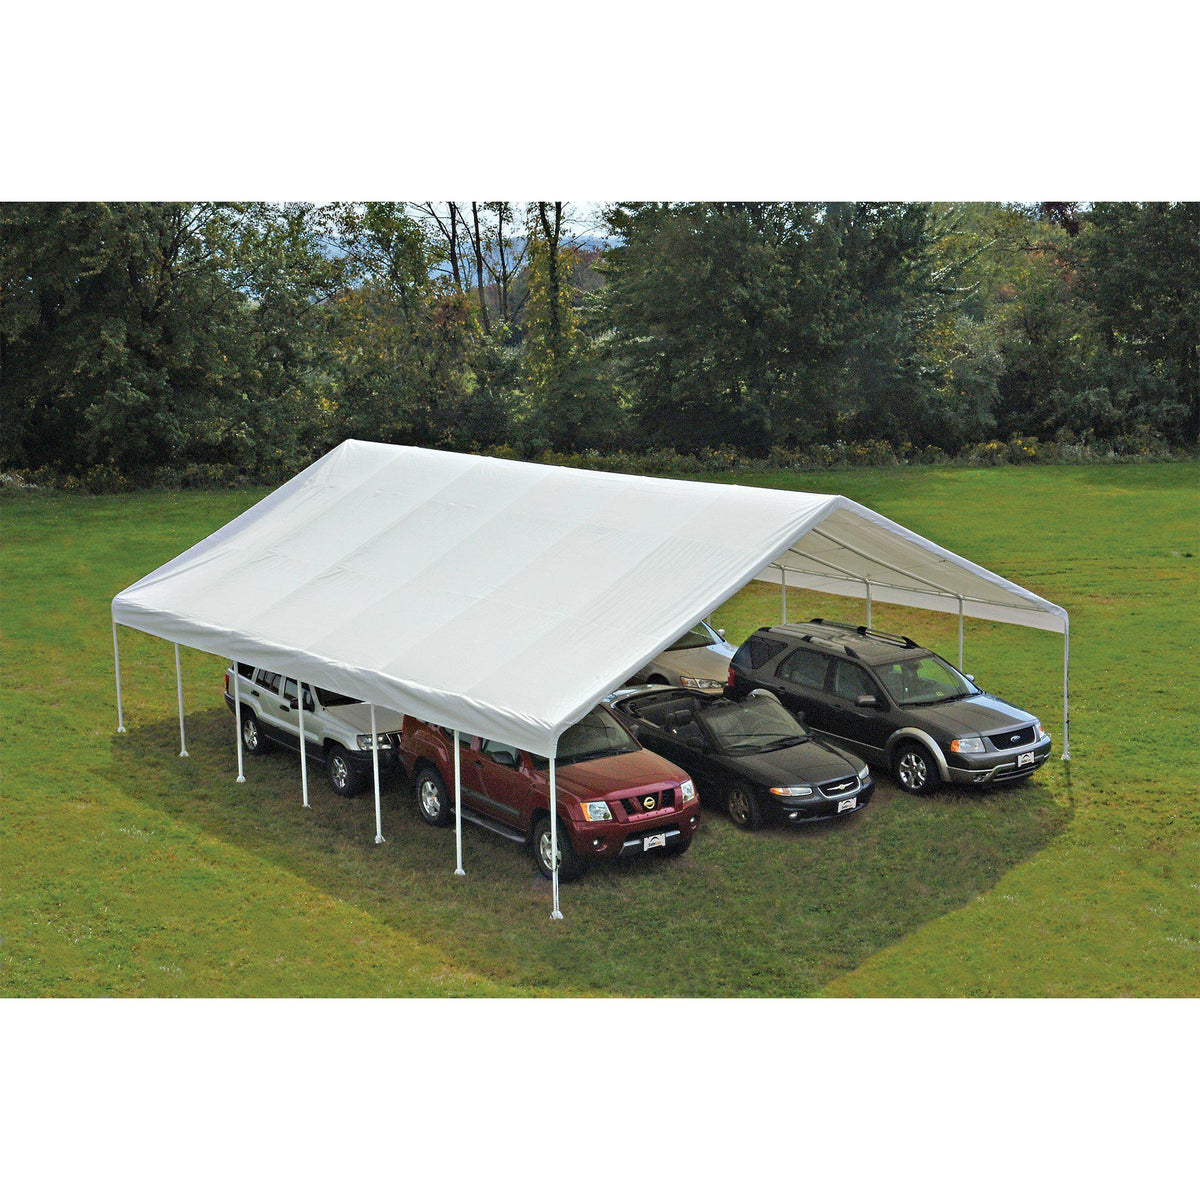 ShelterLogic UltraMax Big Country Canopy, White, 30 x 30 ft.